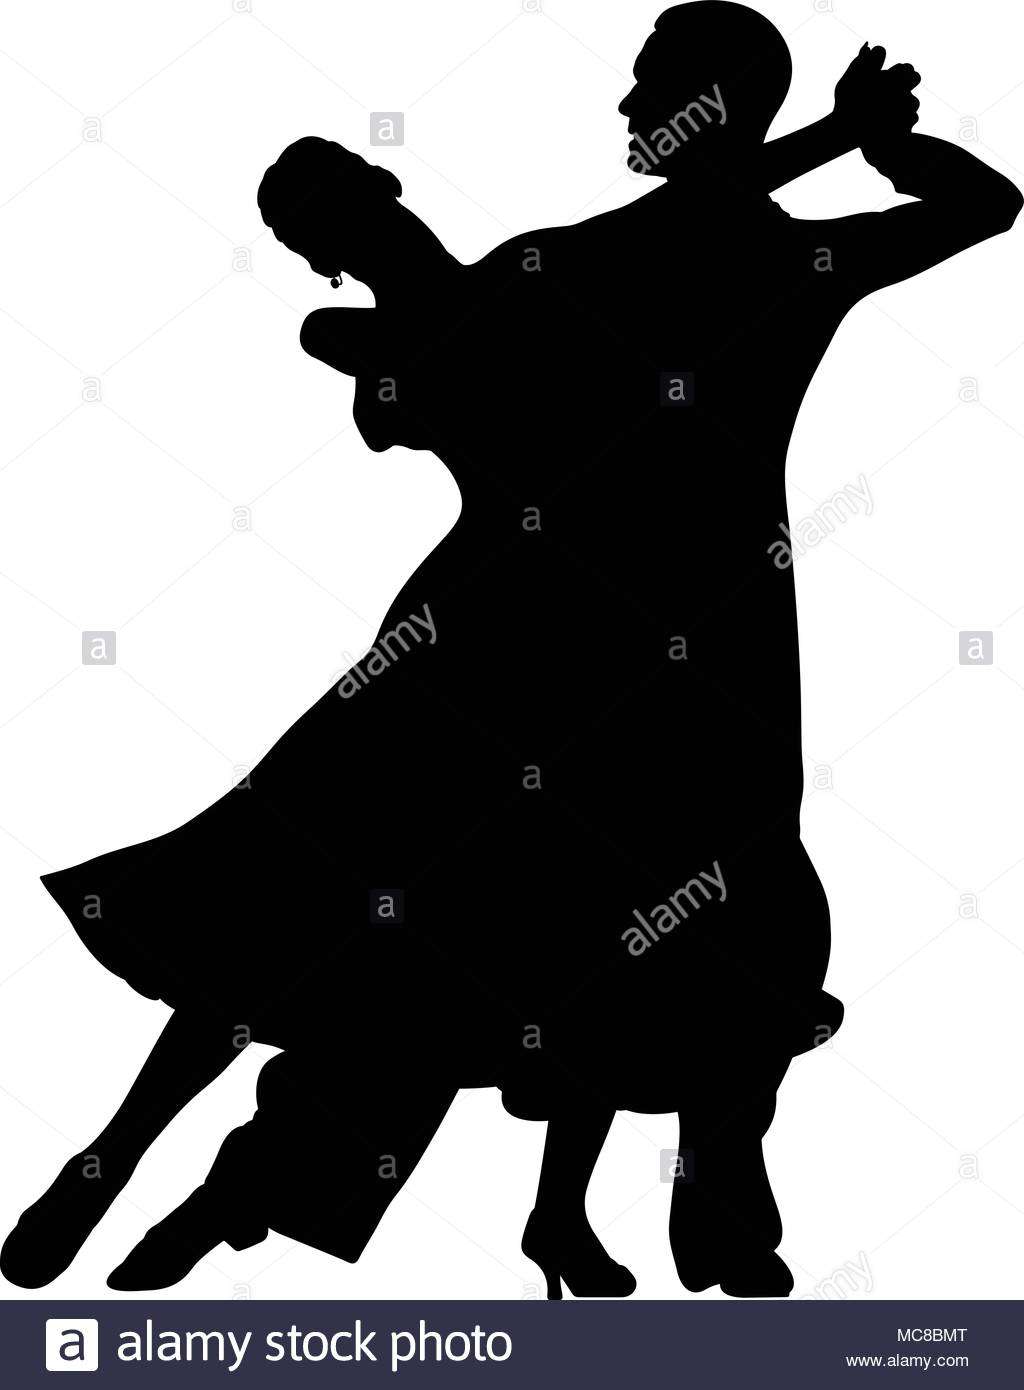 1024x1390 Ballroom Dancing Black Silhouette Pair Women And Men Dancer Stock